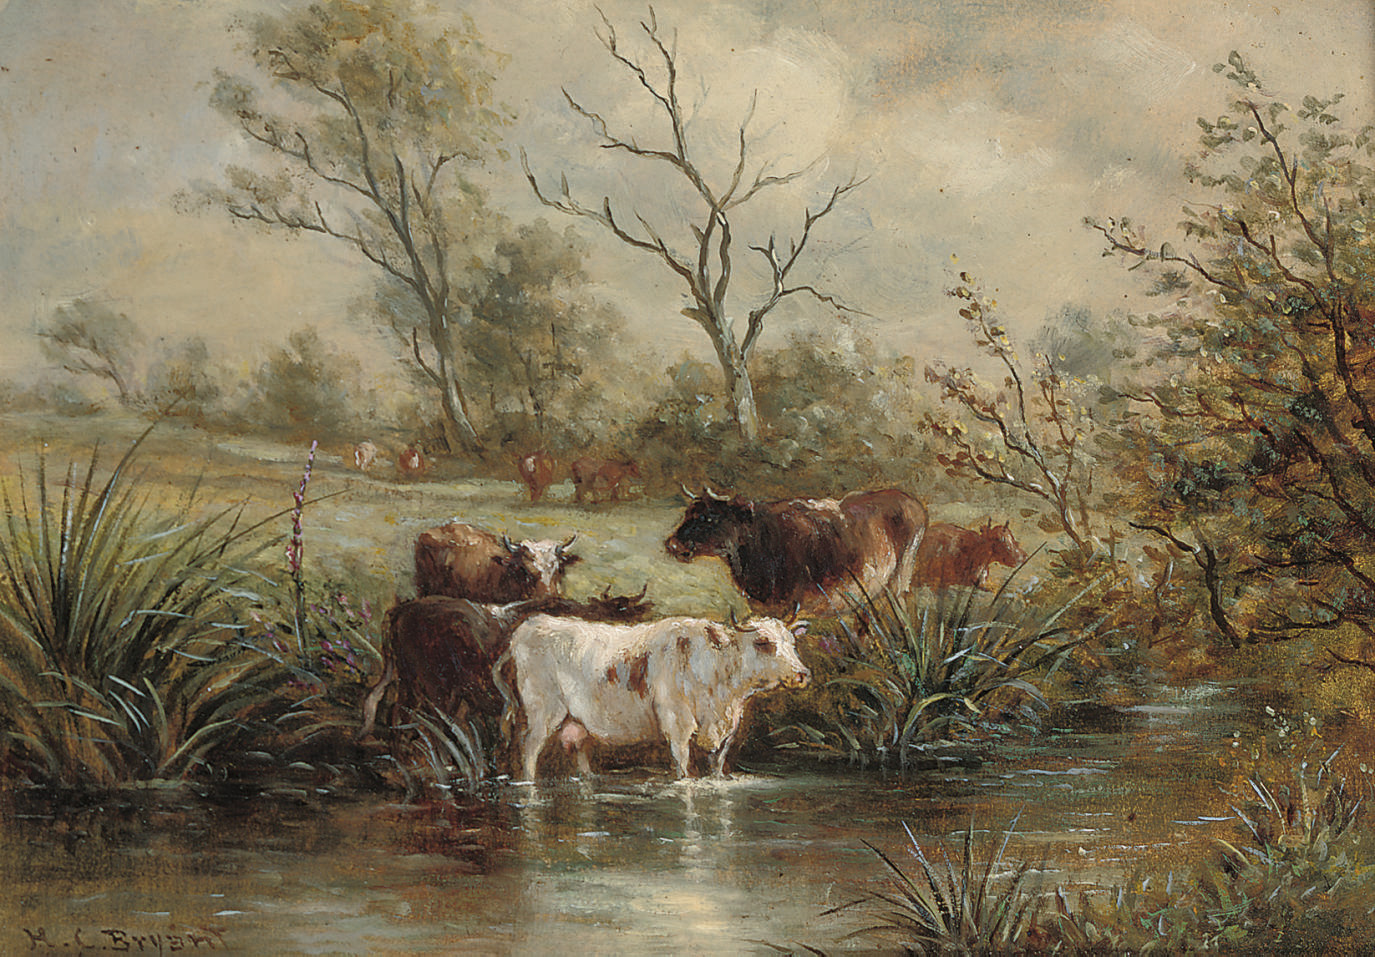 Cattle watering; and Cattle grazing on a river bank